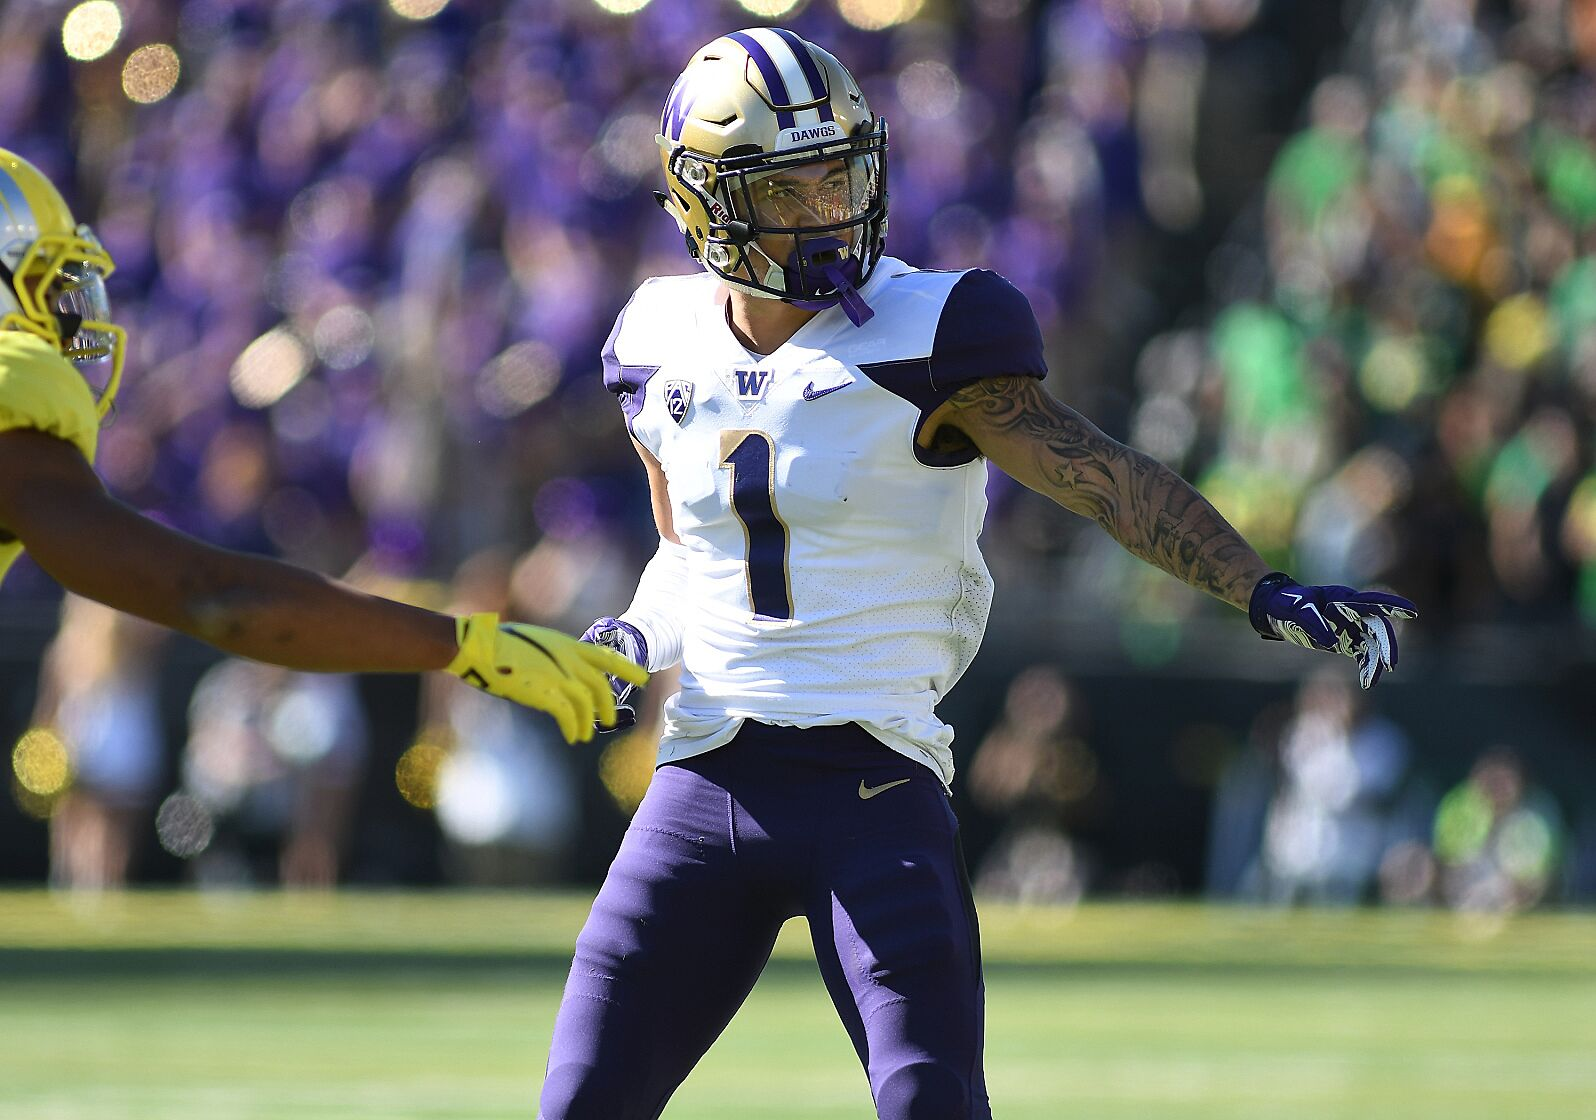 2019 NFL Draft: Complete second round mock draft - Page 2